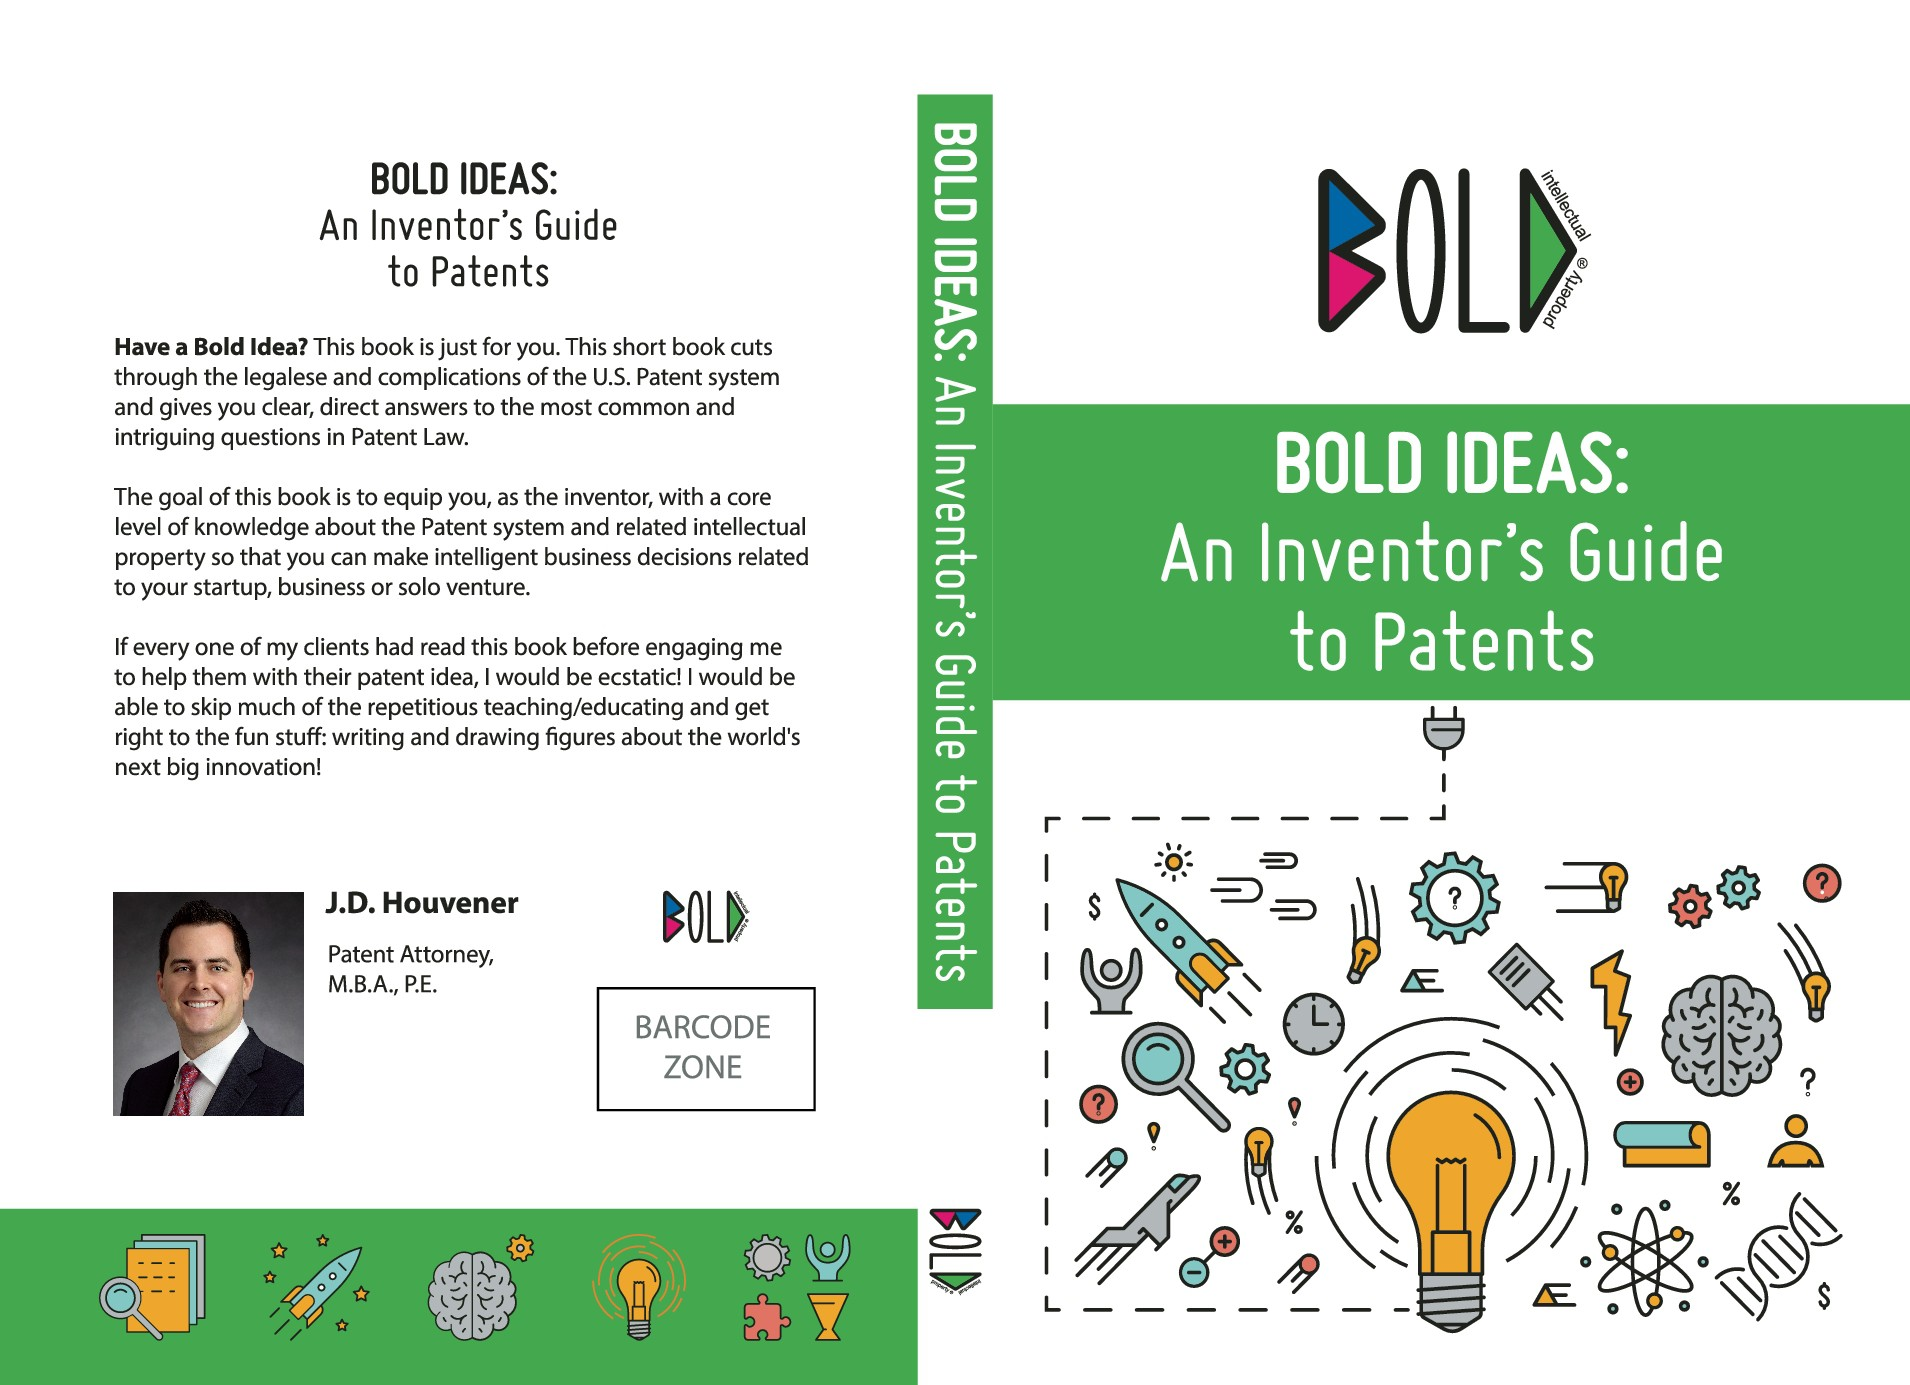 Bold Ideas: An Inventor's Guide to Patents